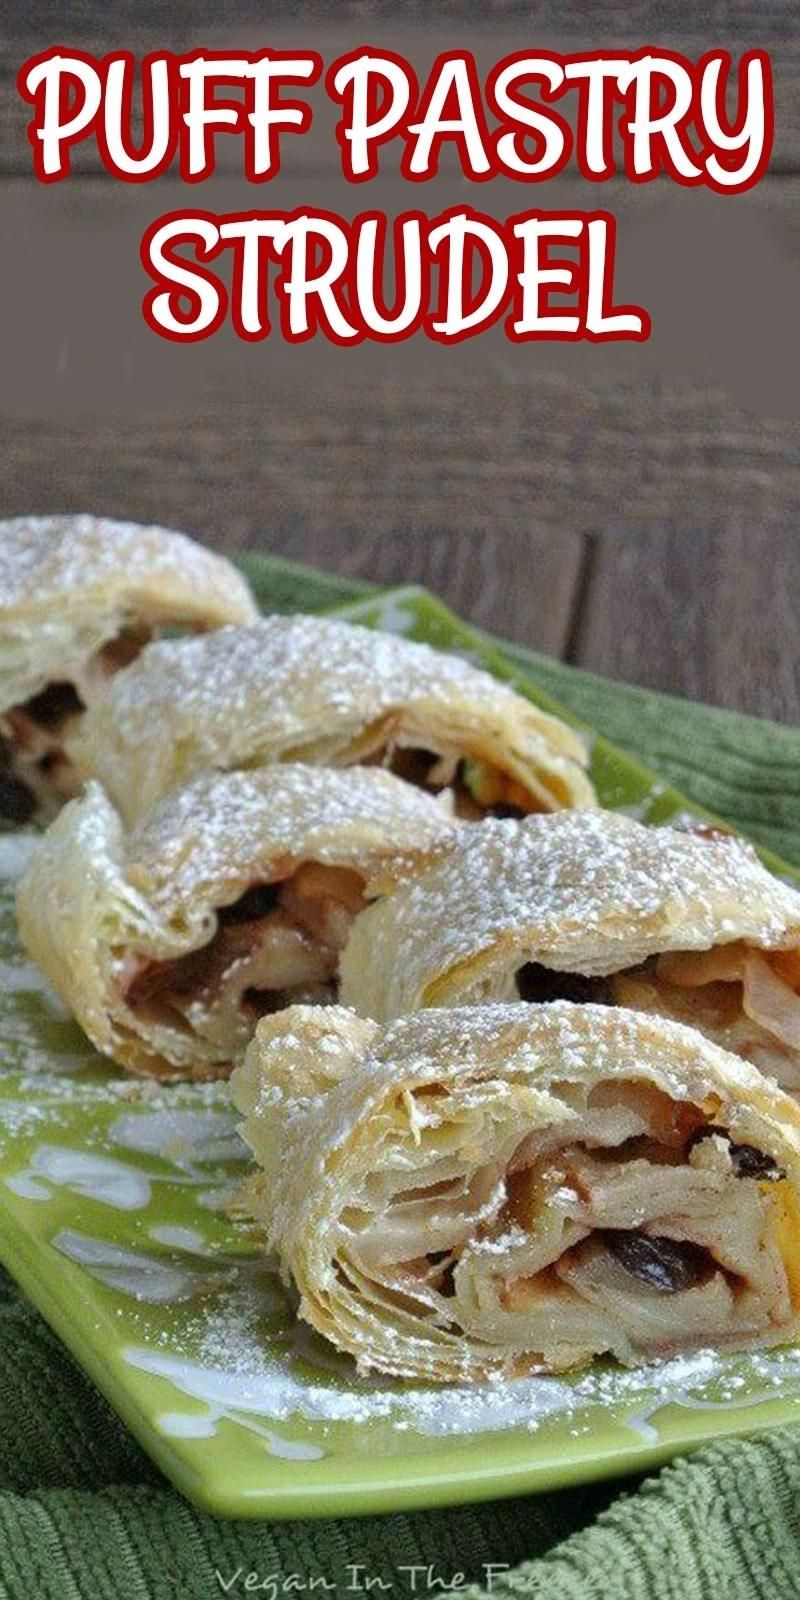 Apple Puff Pastry Strudel Video Vegetarian Desserts Vegetarian Recipes Vegan Breakfast Recipes